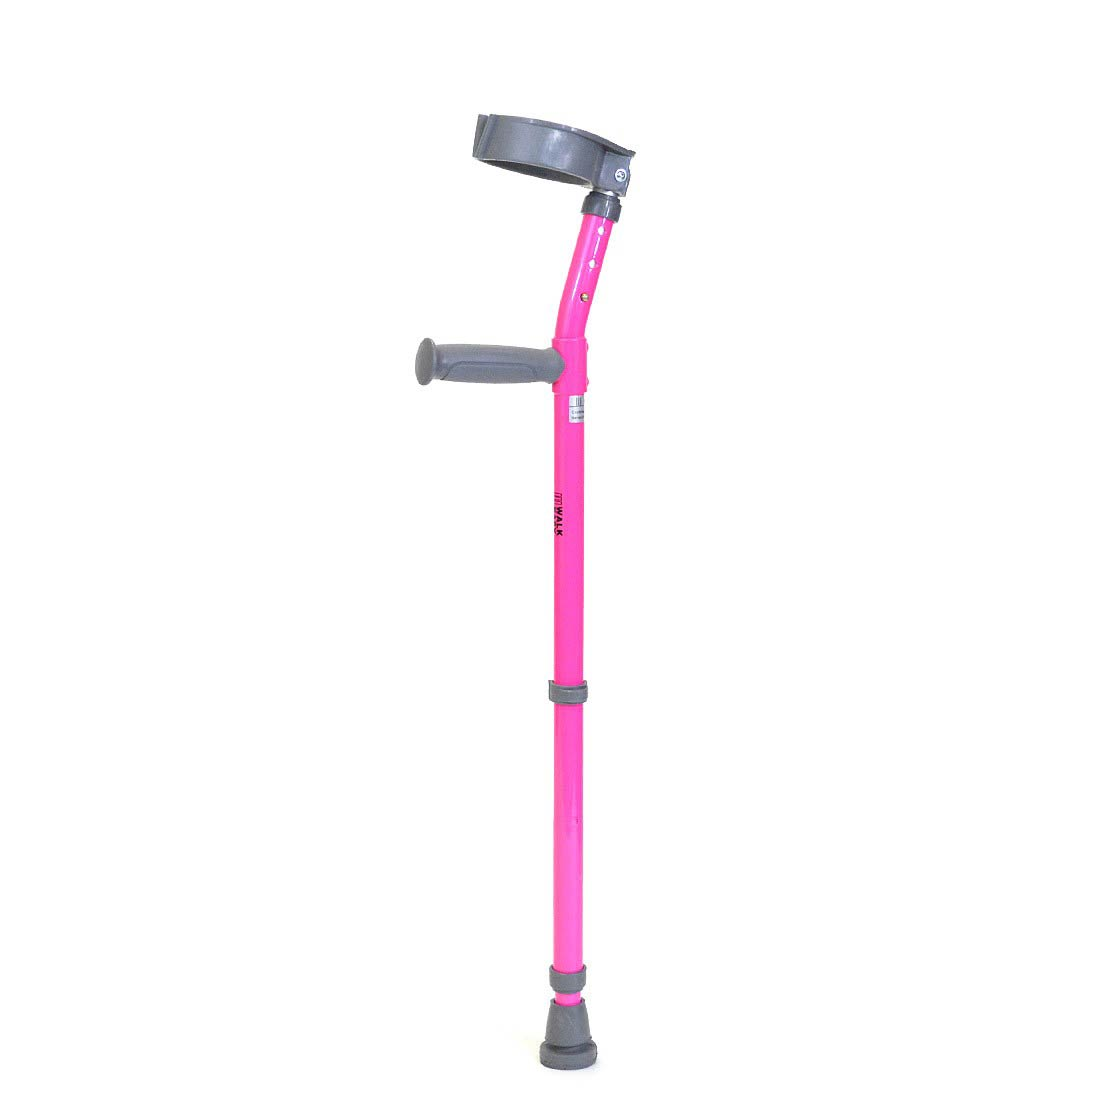 Walk Easy youth forearm height adjustable crutches with full cuff (pair)